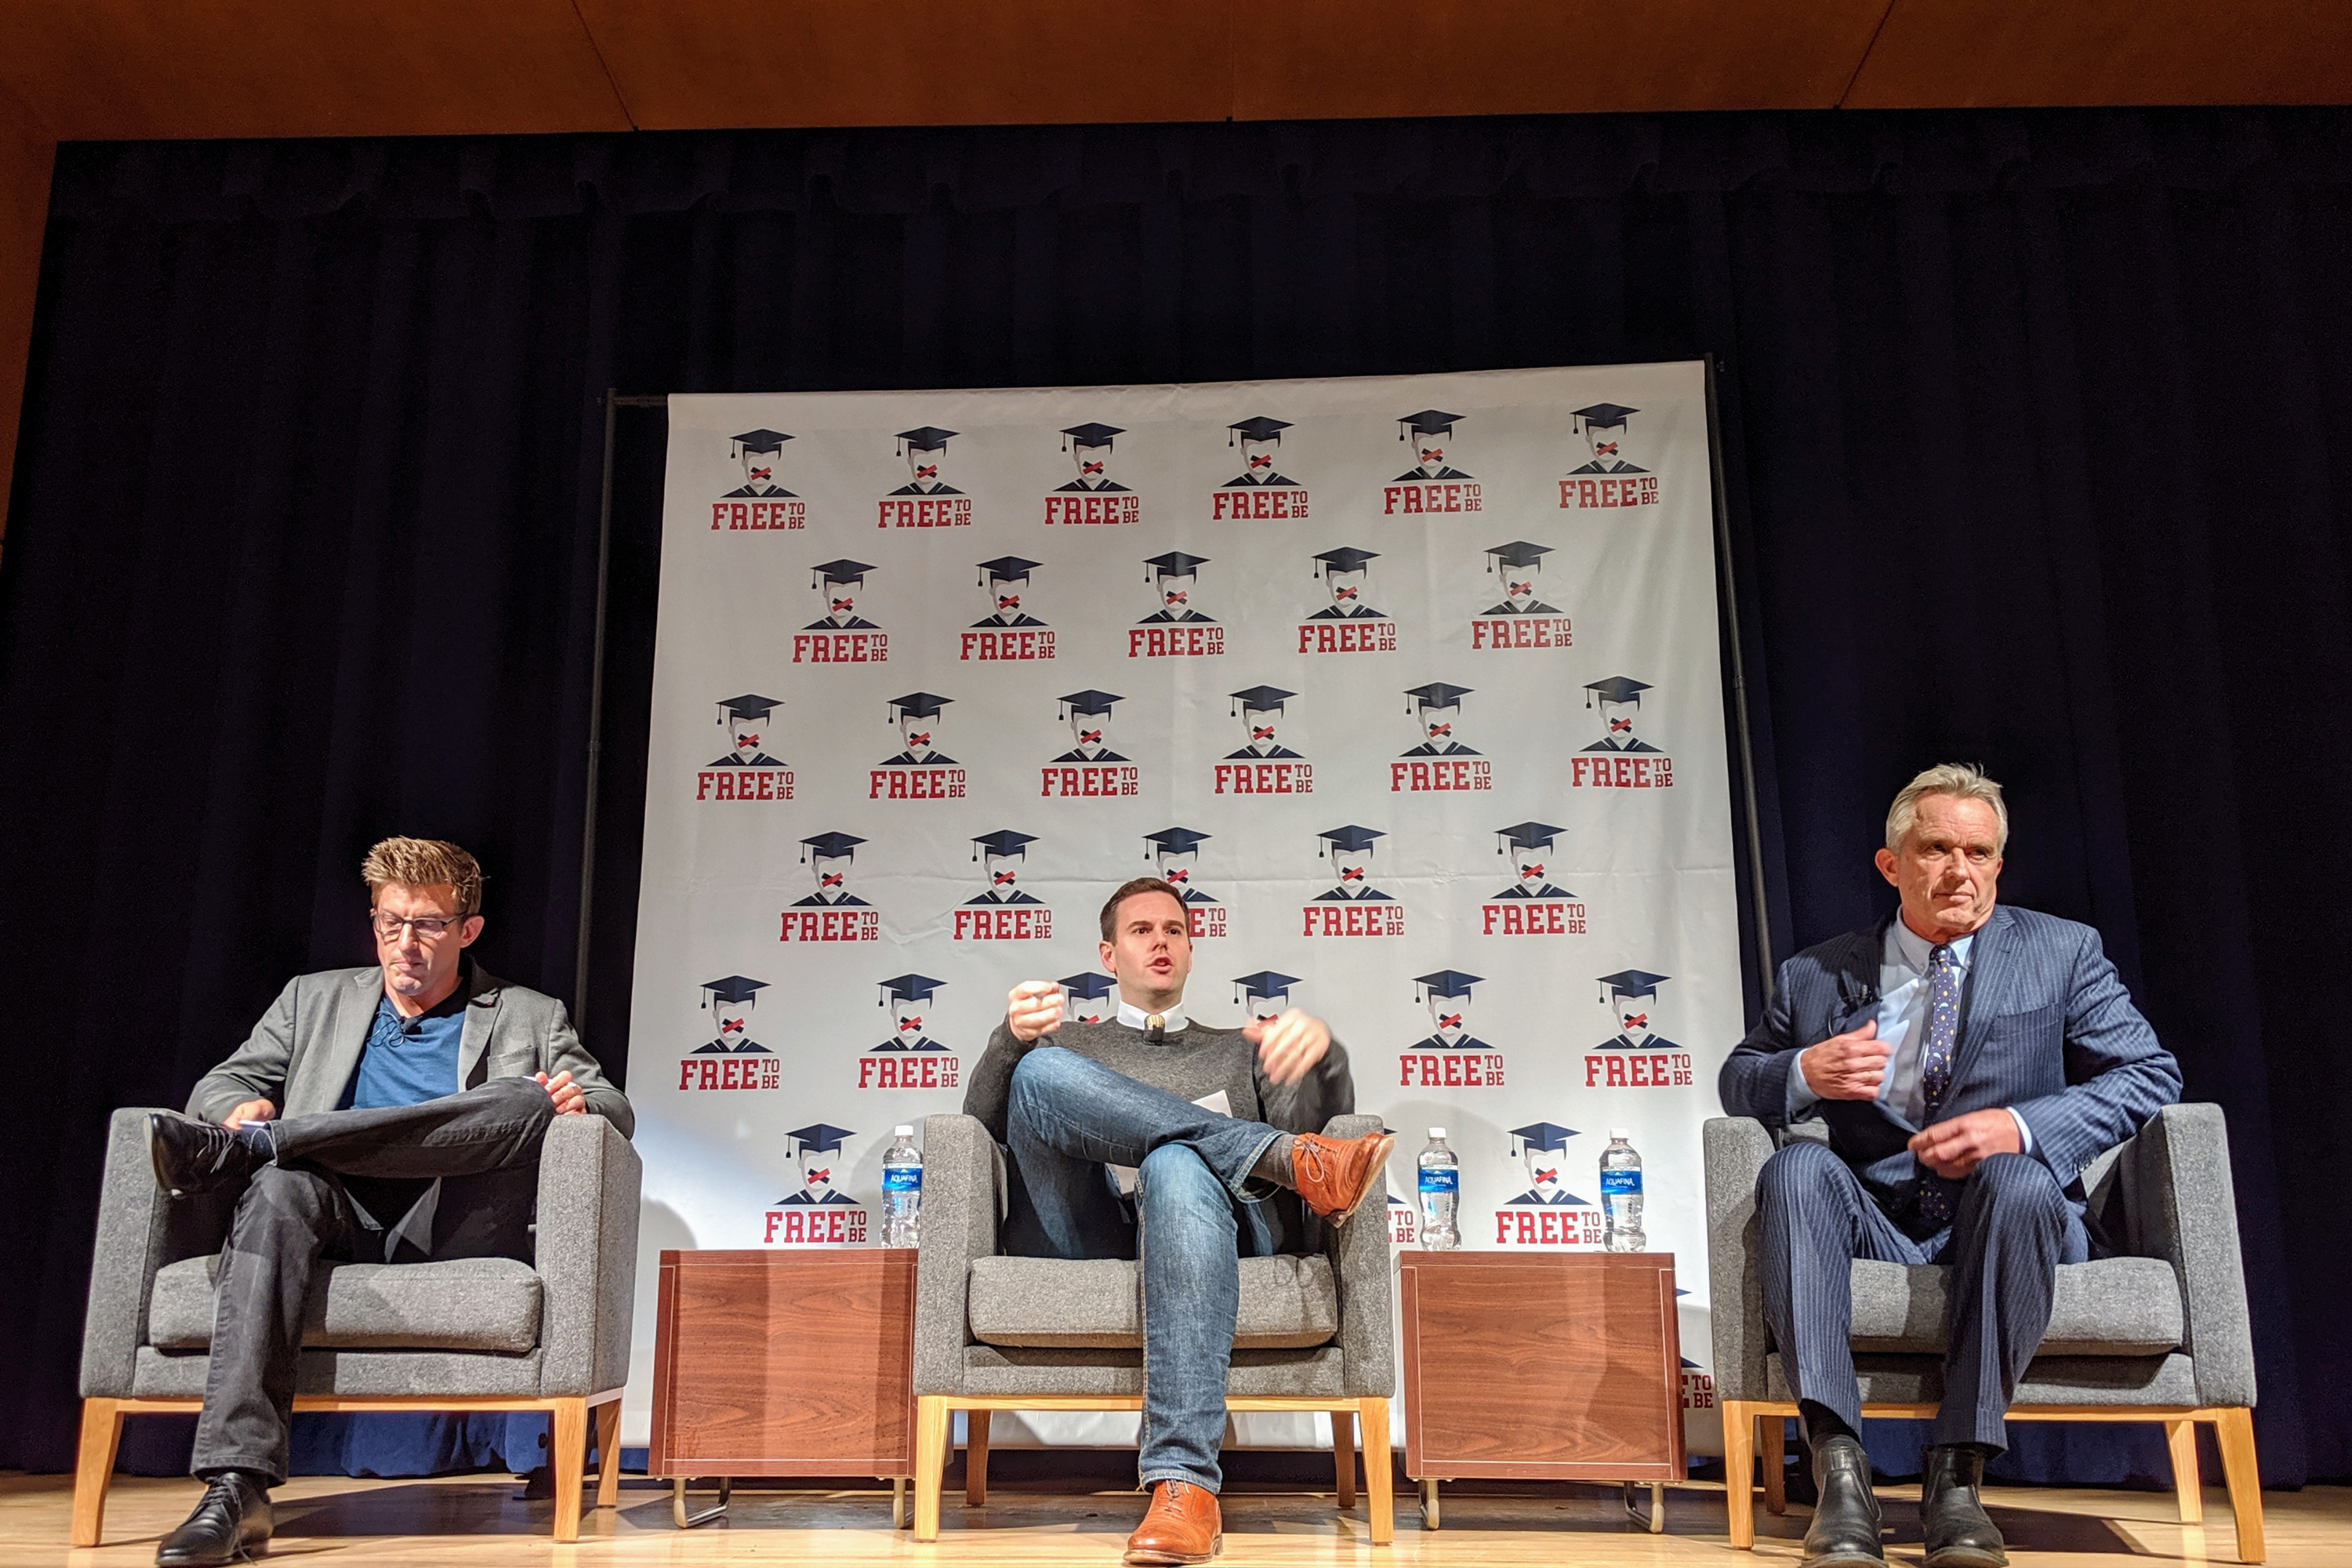 Alex Epstein debates climate change with Robert F. Kennedy Jr. at the University of Colorado Boulder.